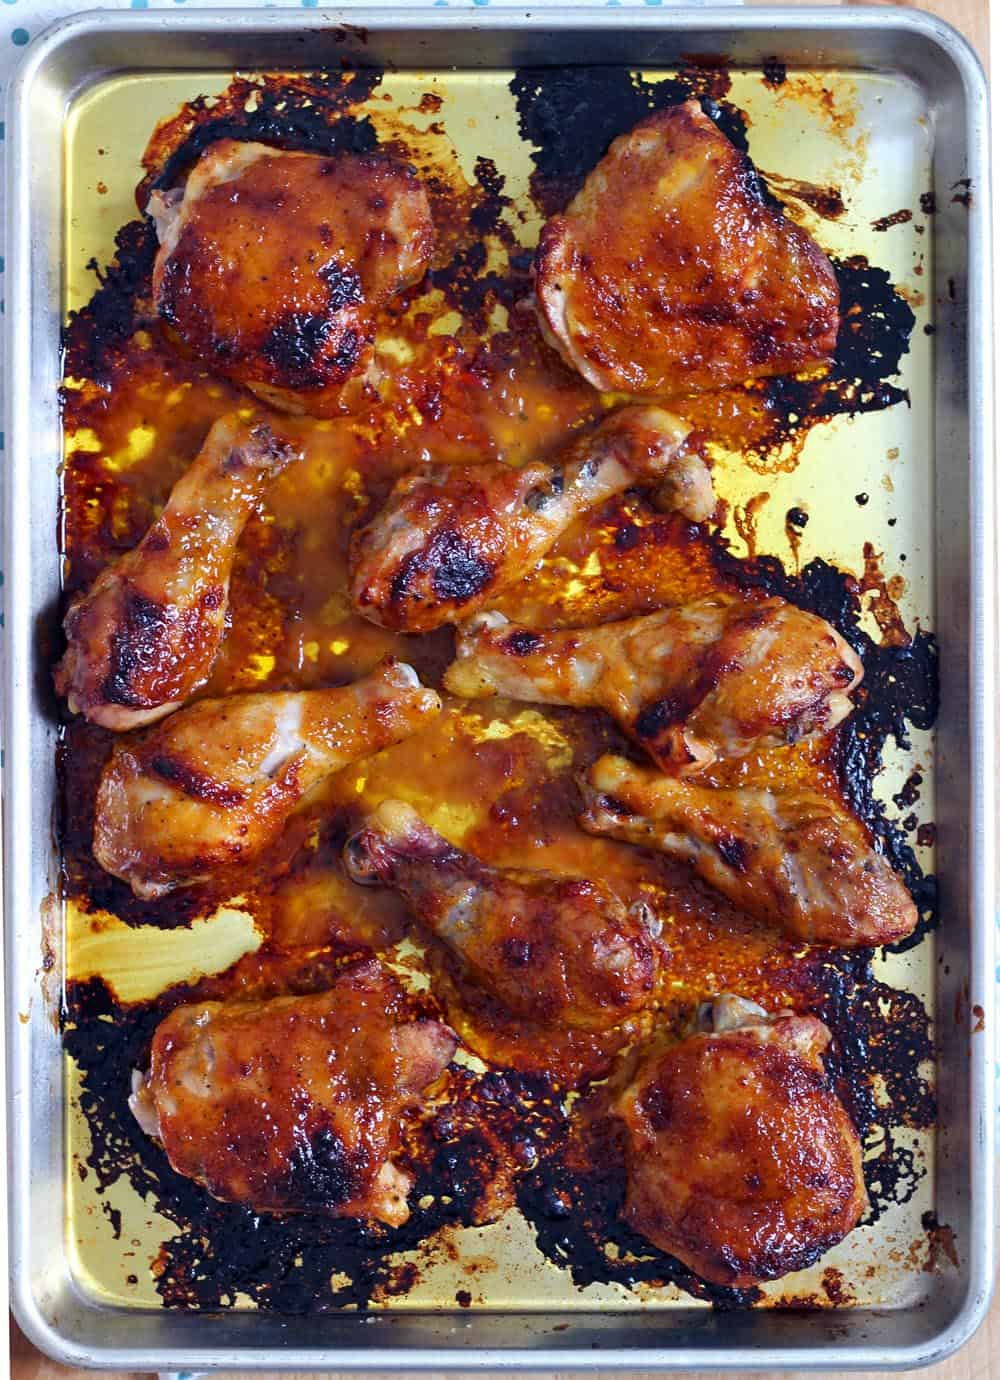 A roasting pan holding several pieces of cooked bbq chicken.